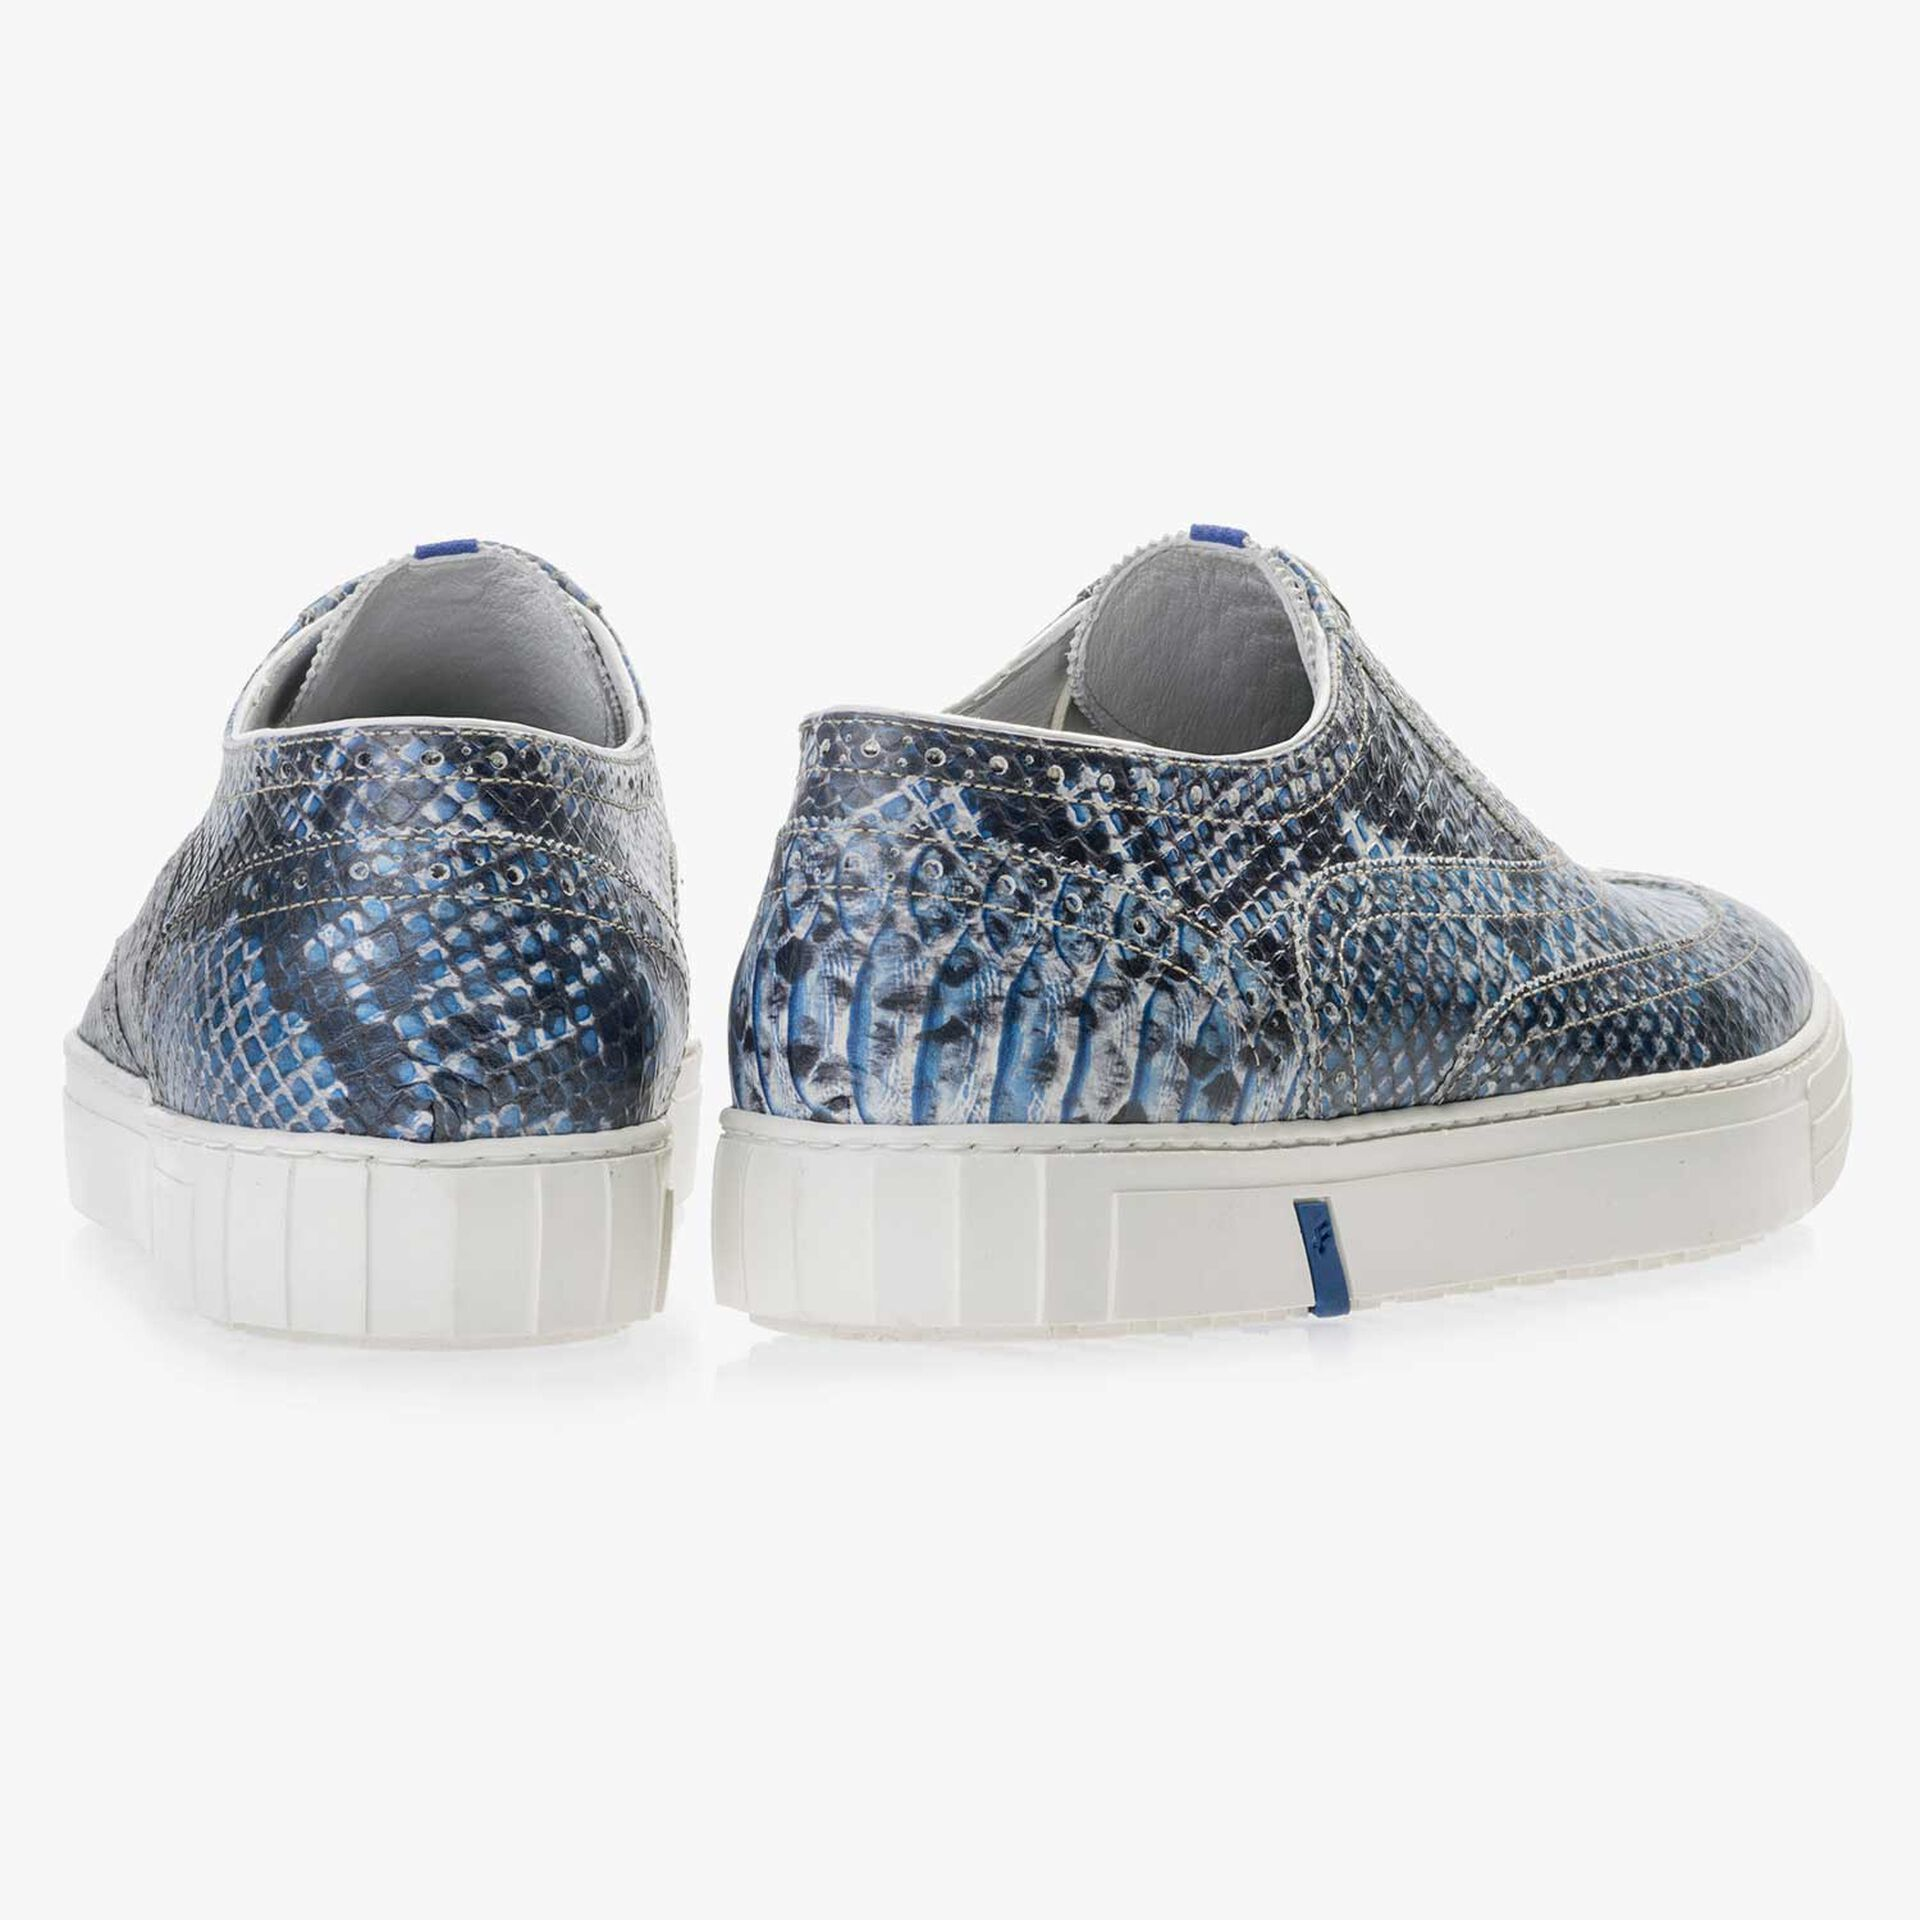 Blue brogue leather sneaker with a snake print